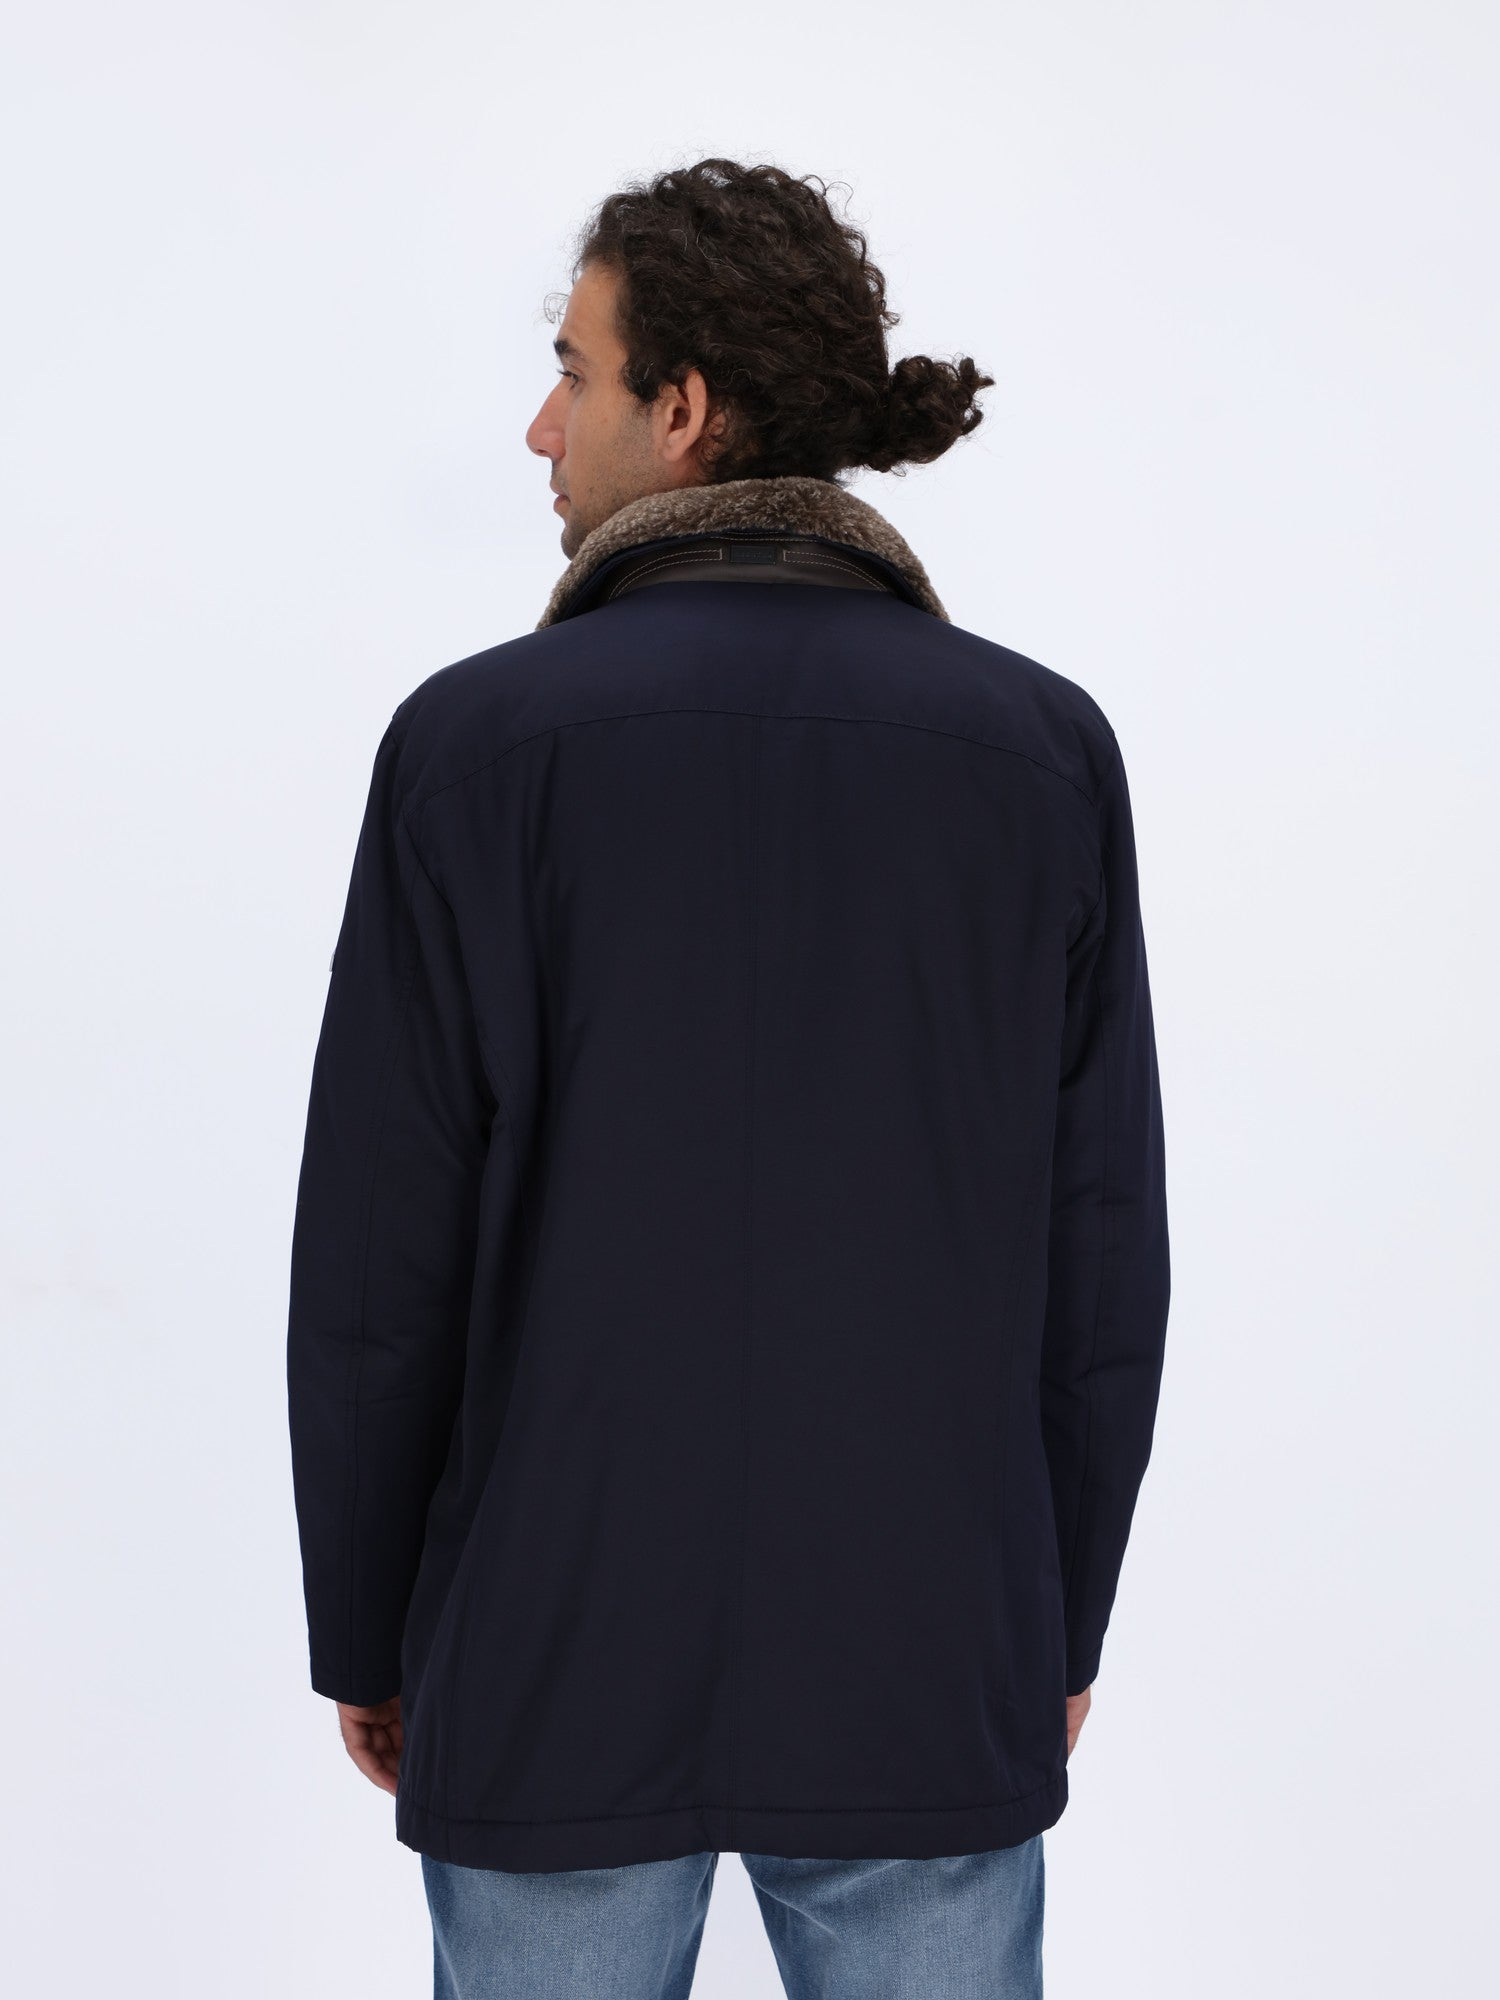 Stand-Up Collar with Fur Field Jacket